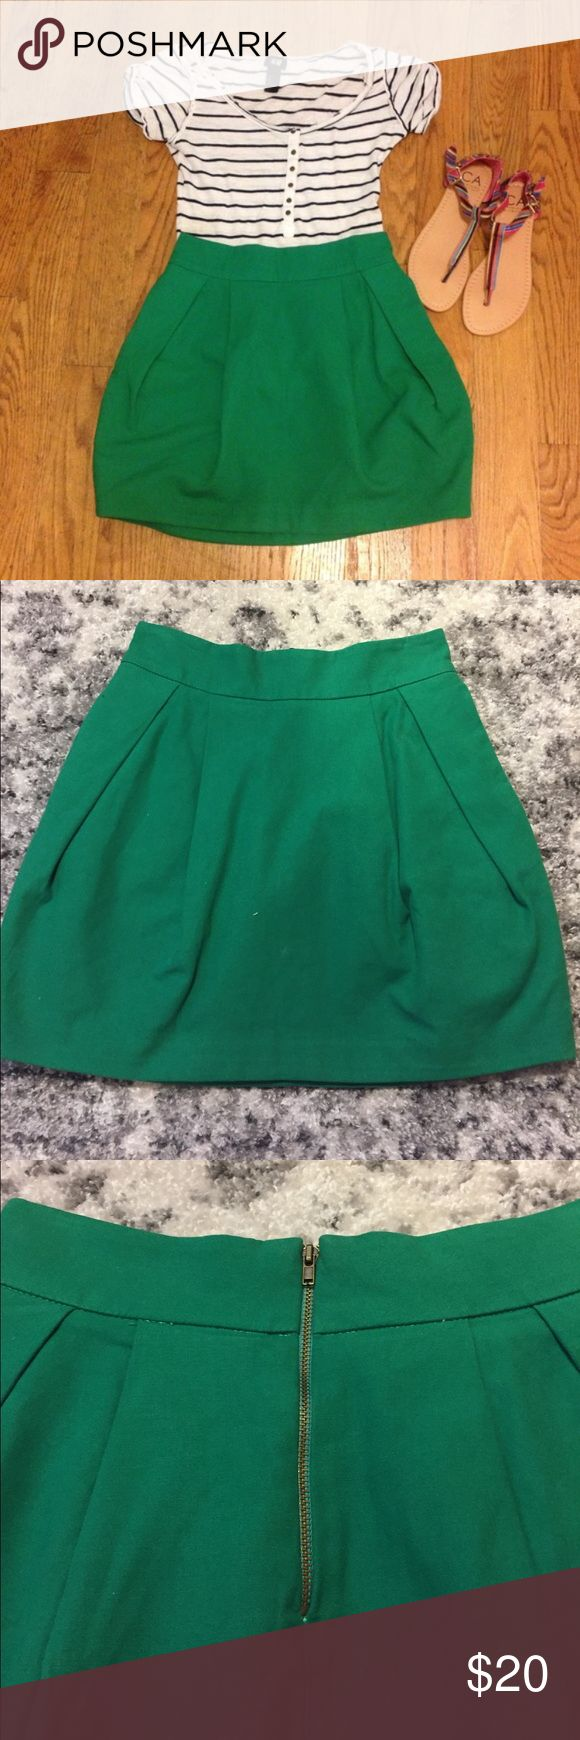 Green Zara tulip skirt Emerald green skirt (same as red skirt also listed). Bought off posh, only used once. Love it!  Complete with pockets! Zara Skirts Mini